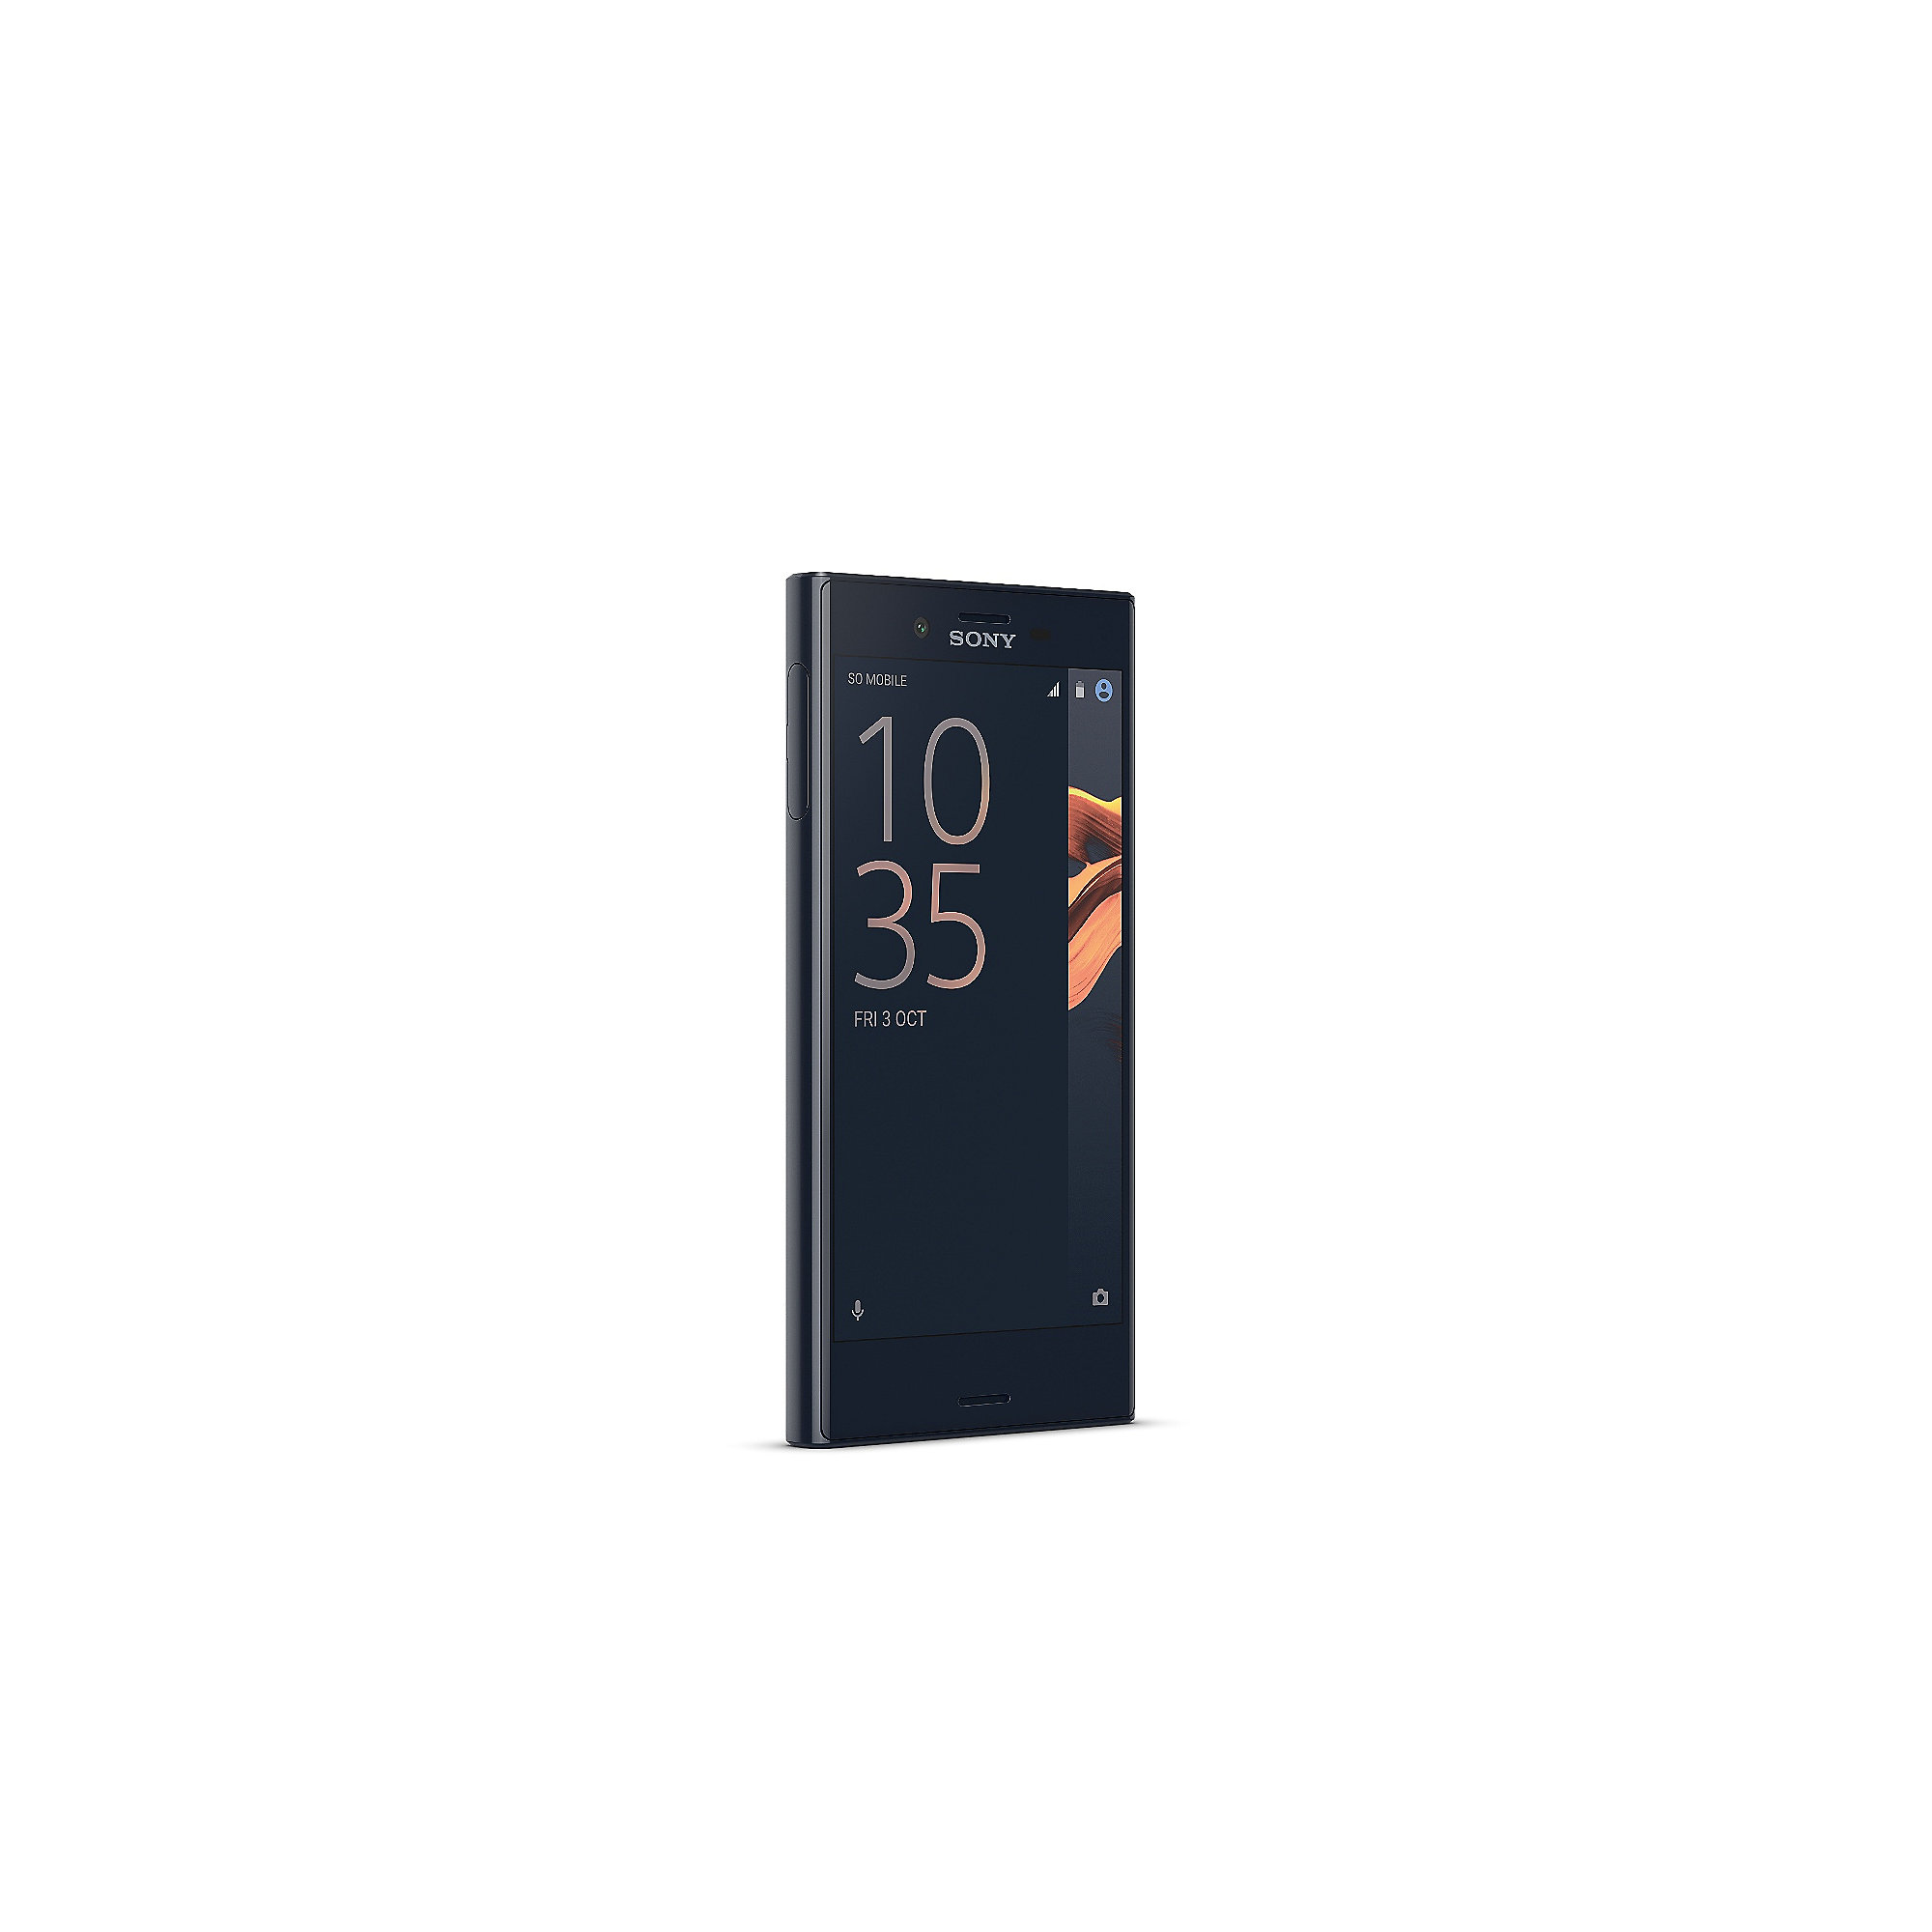 Sony Xperia XCompact universe black Android Smartphone